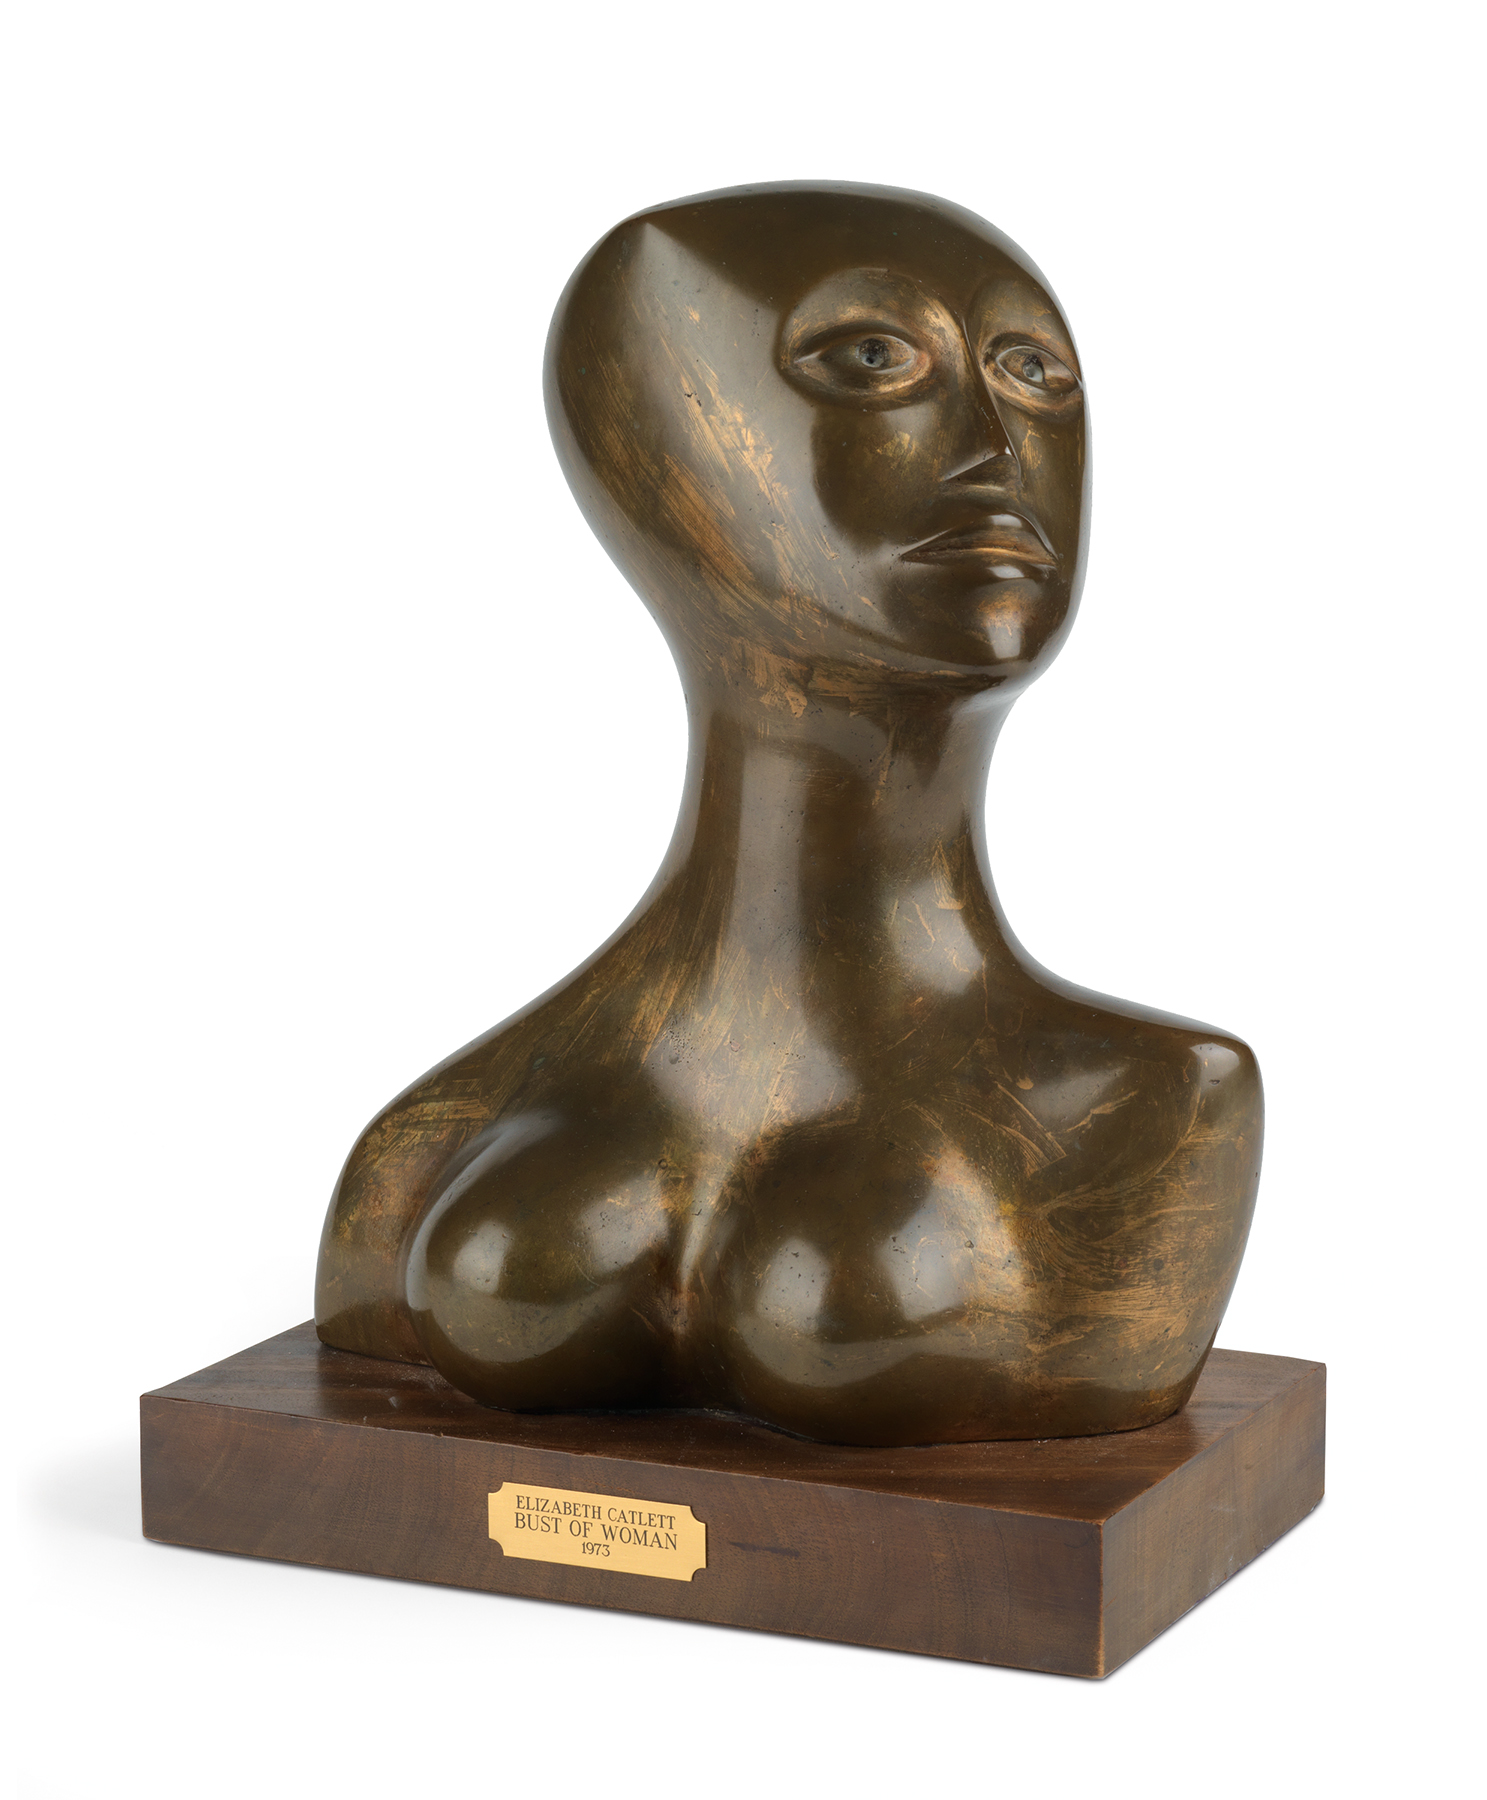 Sister, a cast bronze statue mounted on a wooden base, was created by Elizabeth Catlett in 1973.